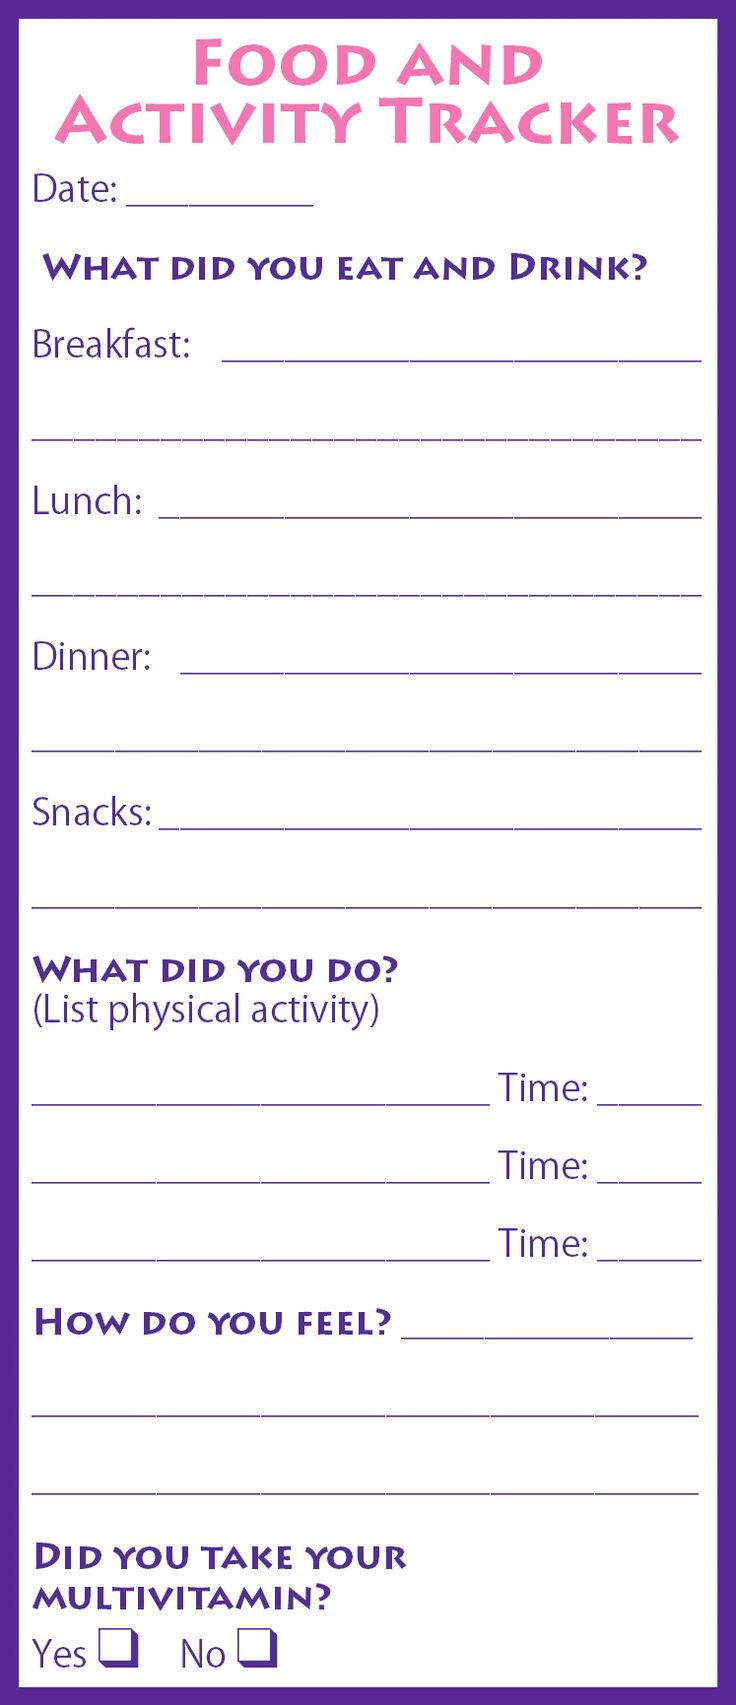 Track it! | Most of us do not know how much we really eat or how active we are each day. But if we write it down, we pay closer attention to our habits. Studies show that keeping track of what we eat each day can double weight loss! So, keep track in a notebook, on a scrap of paper, or even on a napkin—just get tracking. Click through for a printable food and activity tracker.